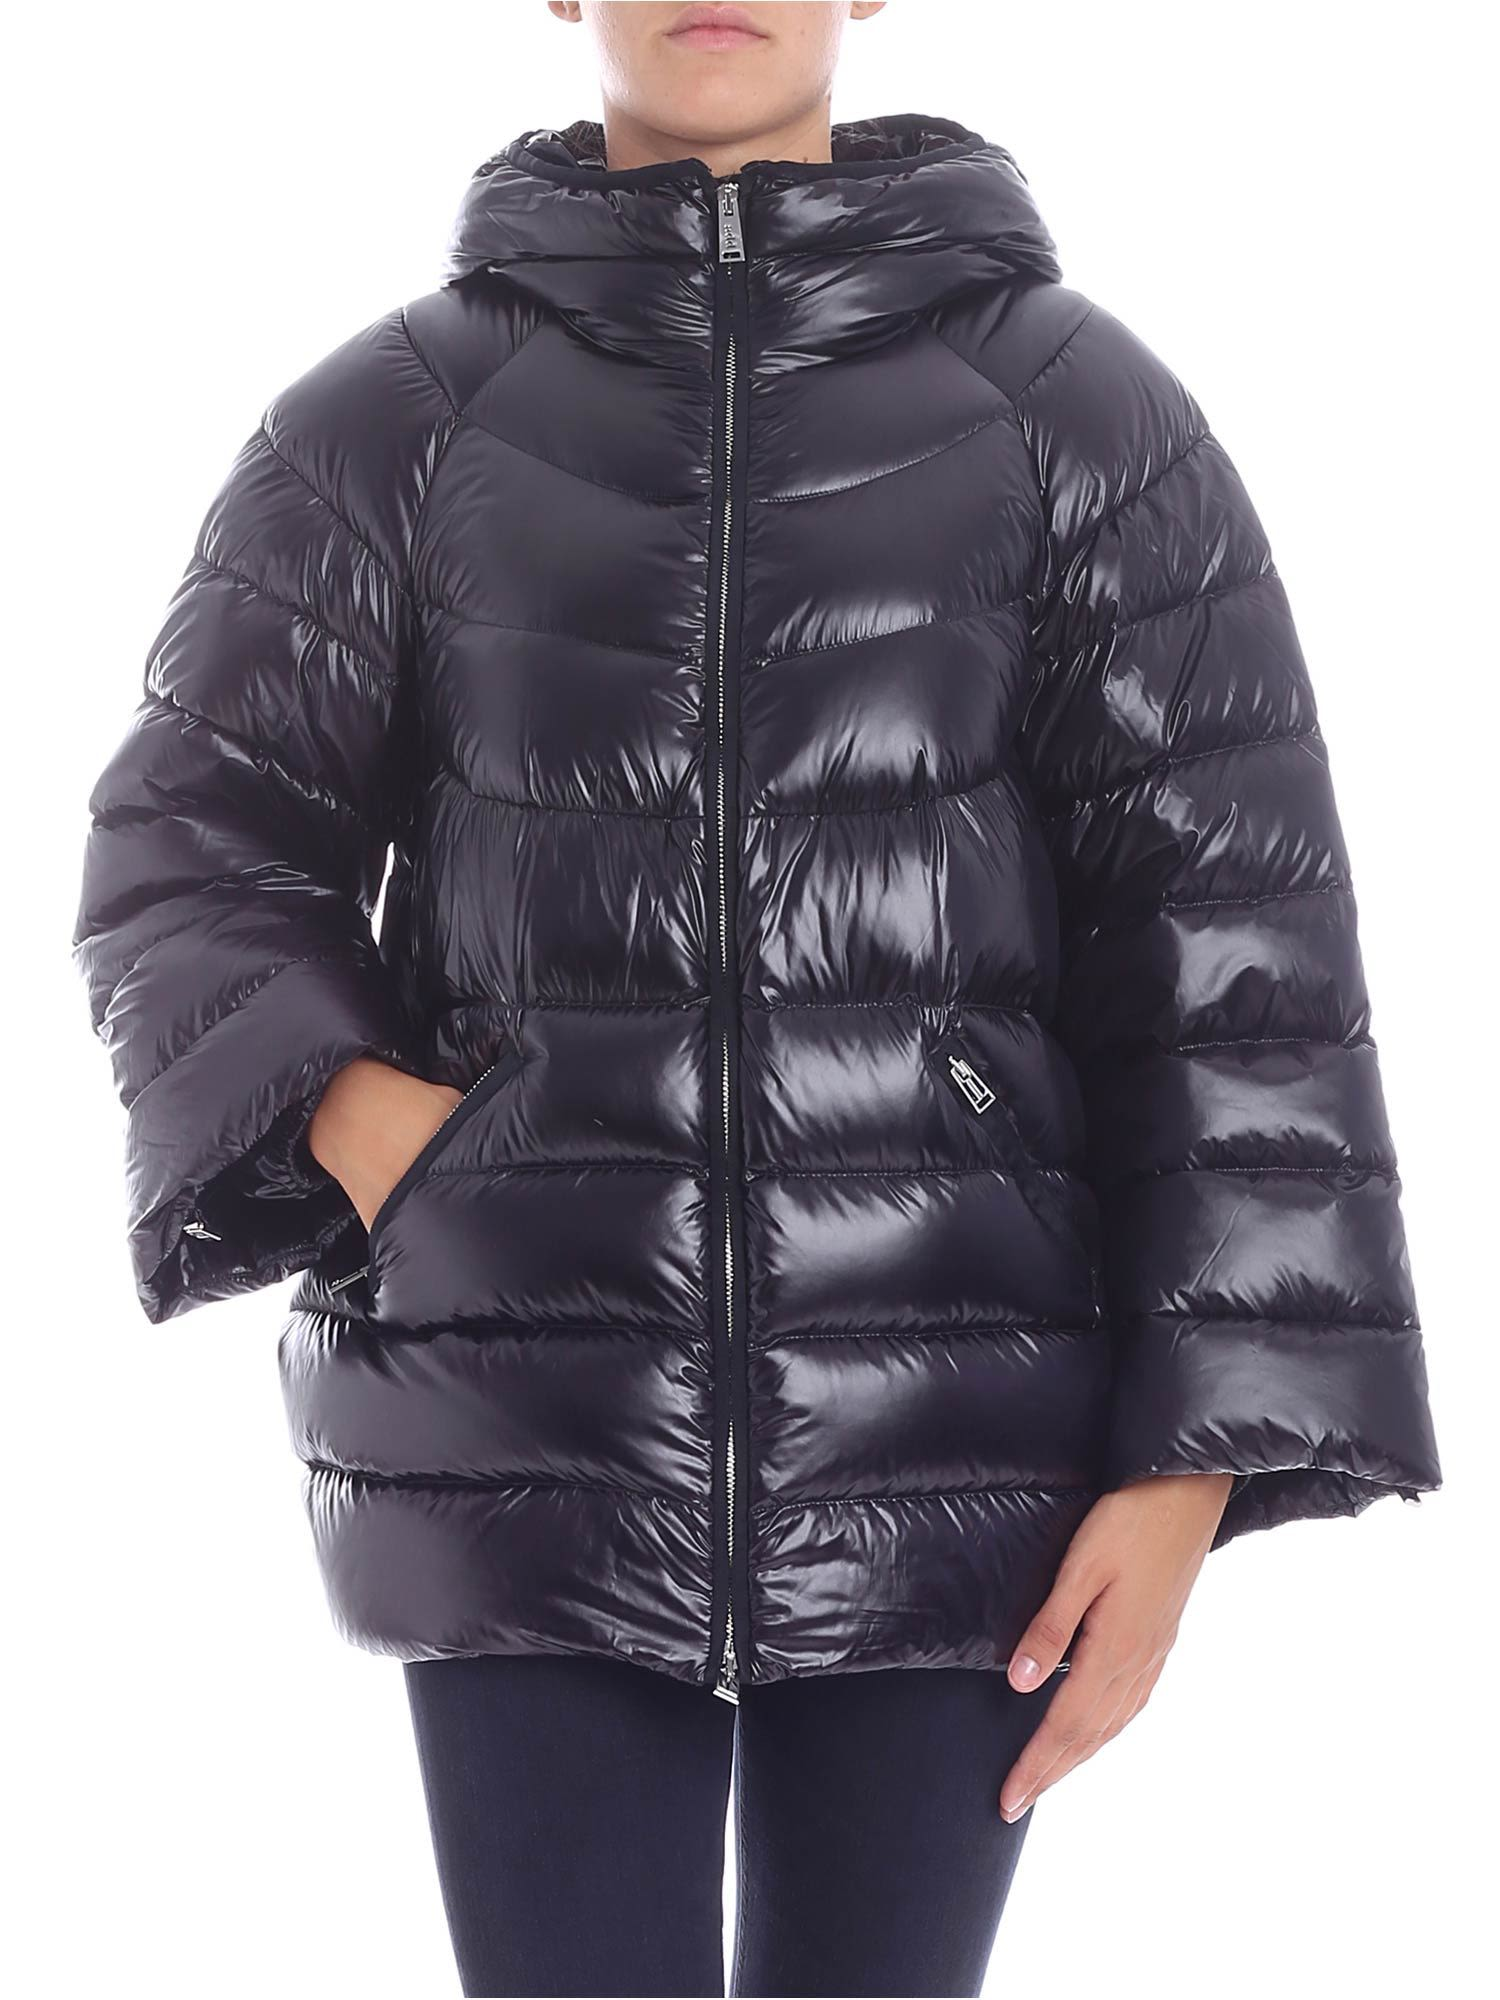 ADD Zipped Down Jacket in Nero